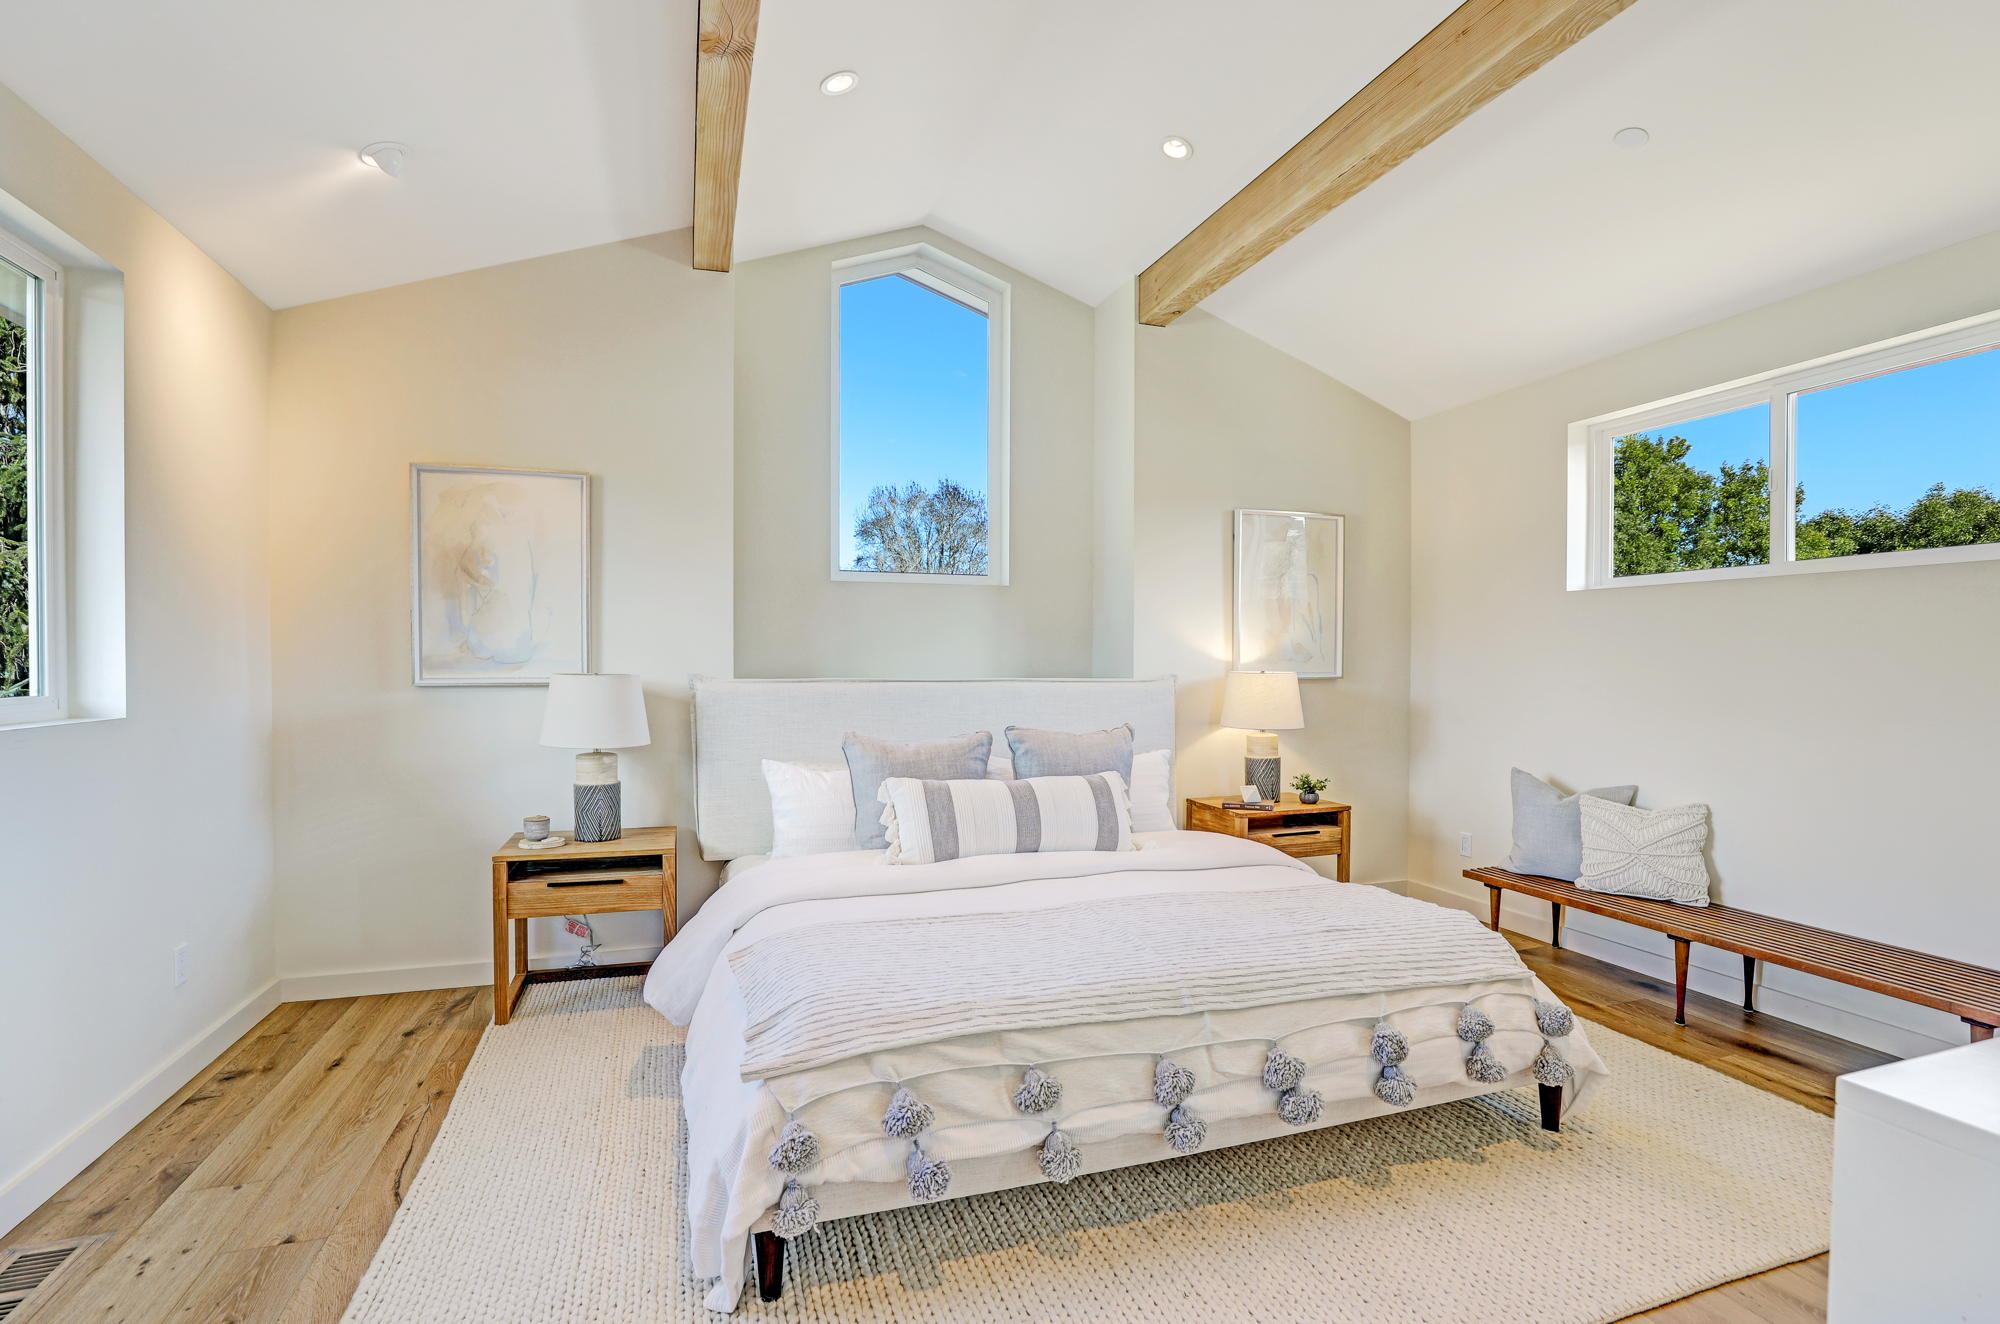 38 Ryan Avenue, Mill Valley - Sycamore Park Homes for sale - 44- Listed by Team Own Marin with Compass Real Estate.jpg